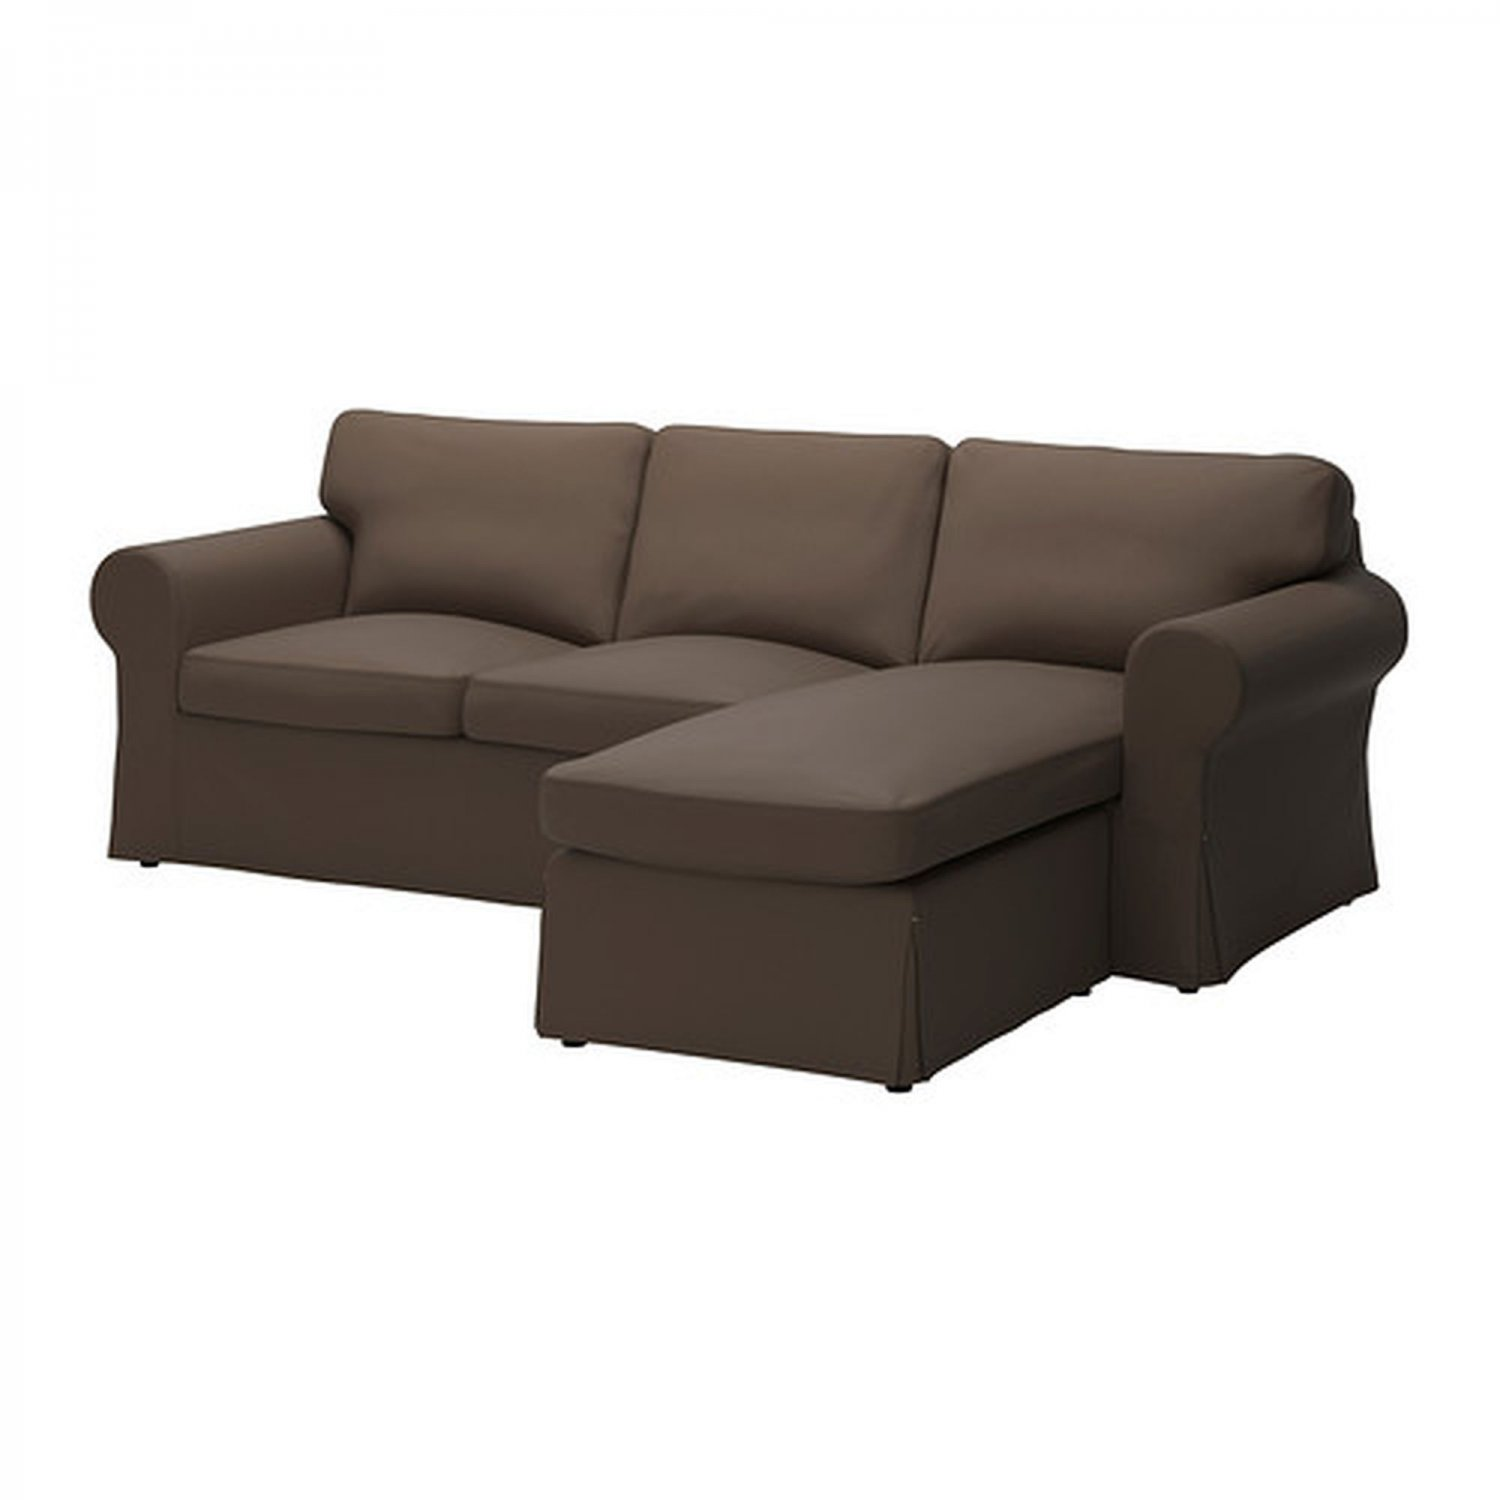 ikea ektorp loveseat with chaise slipcover 3 seat sectional cover jonsboda brown. Black Bedroom Furniture Sets. Home Design Ideas